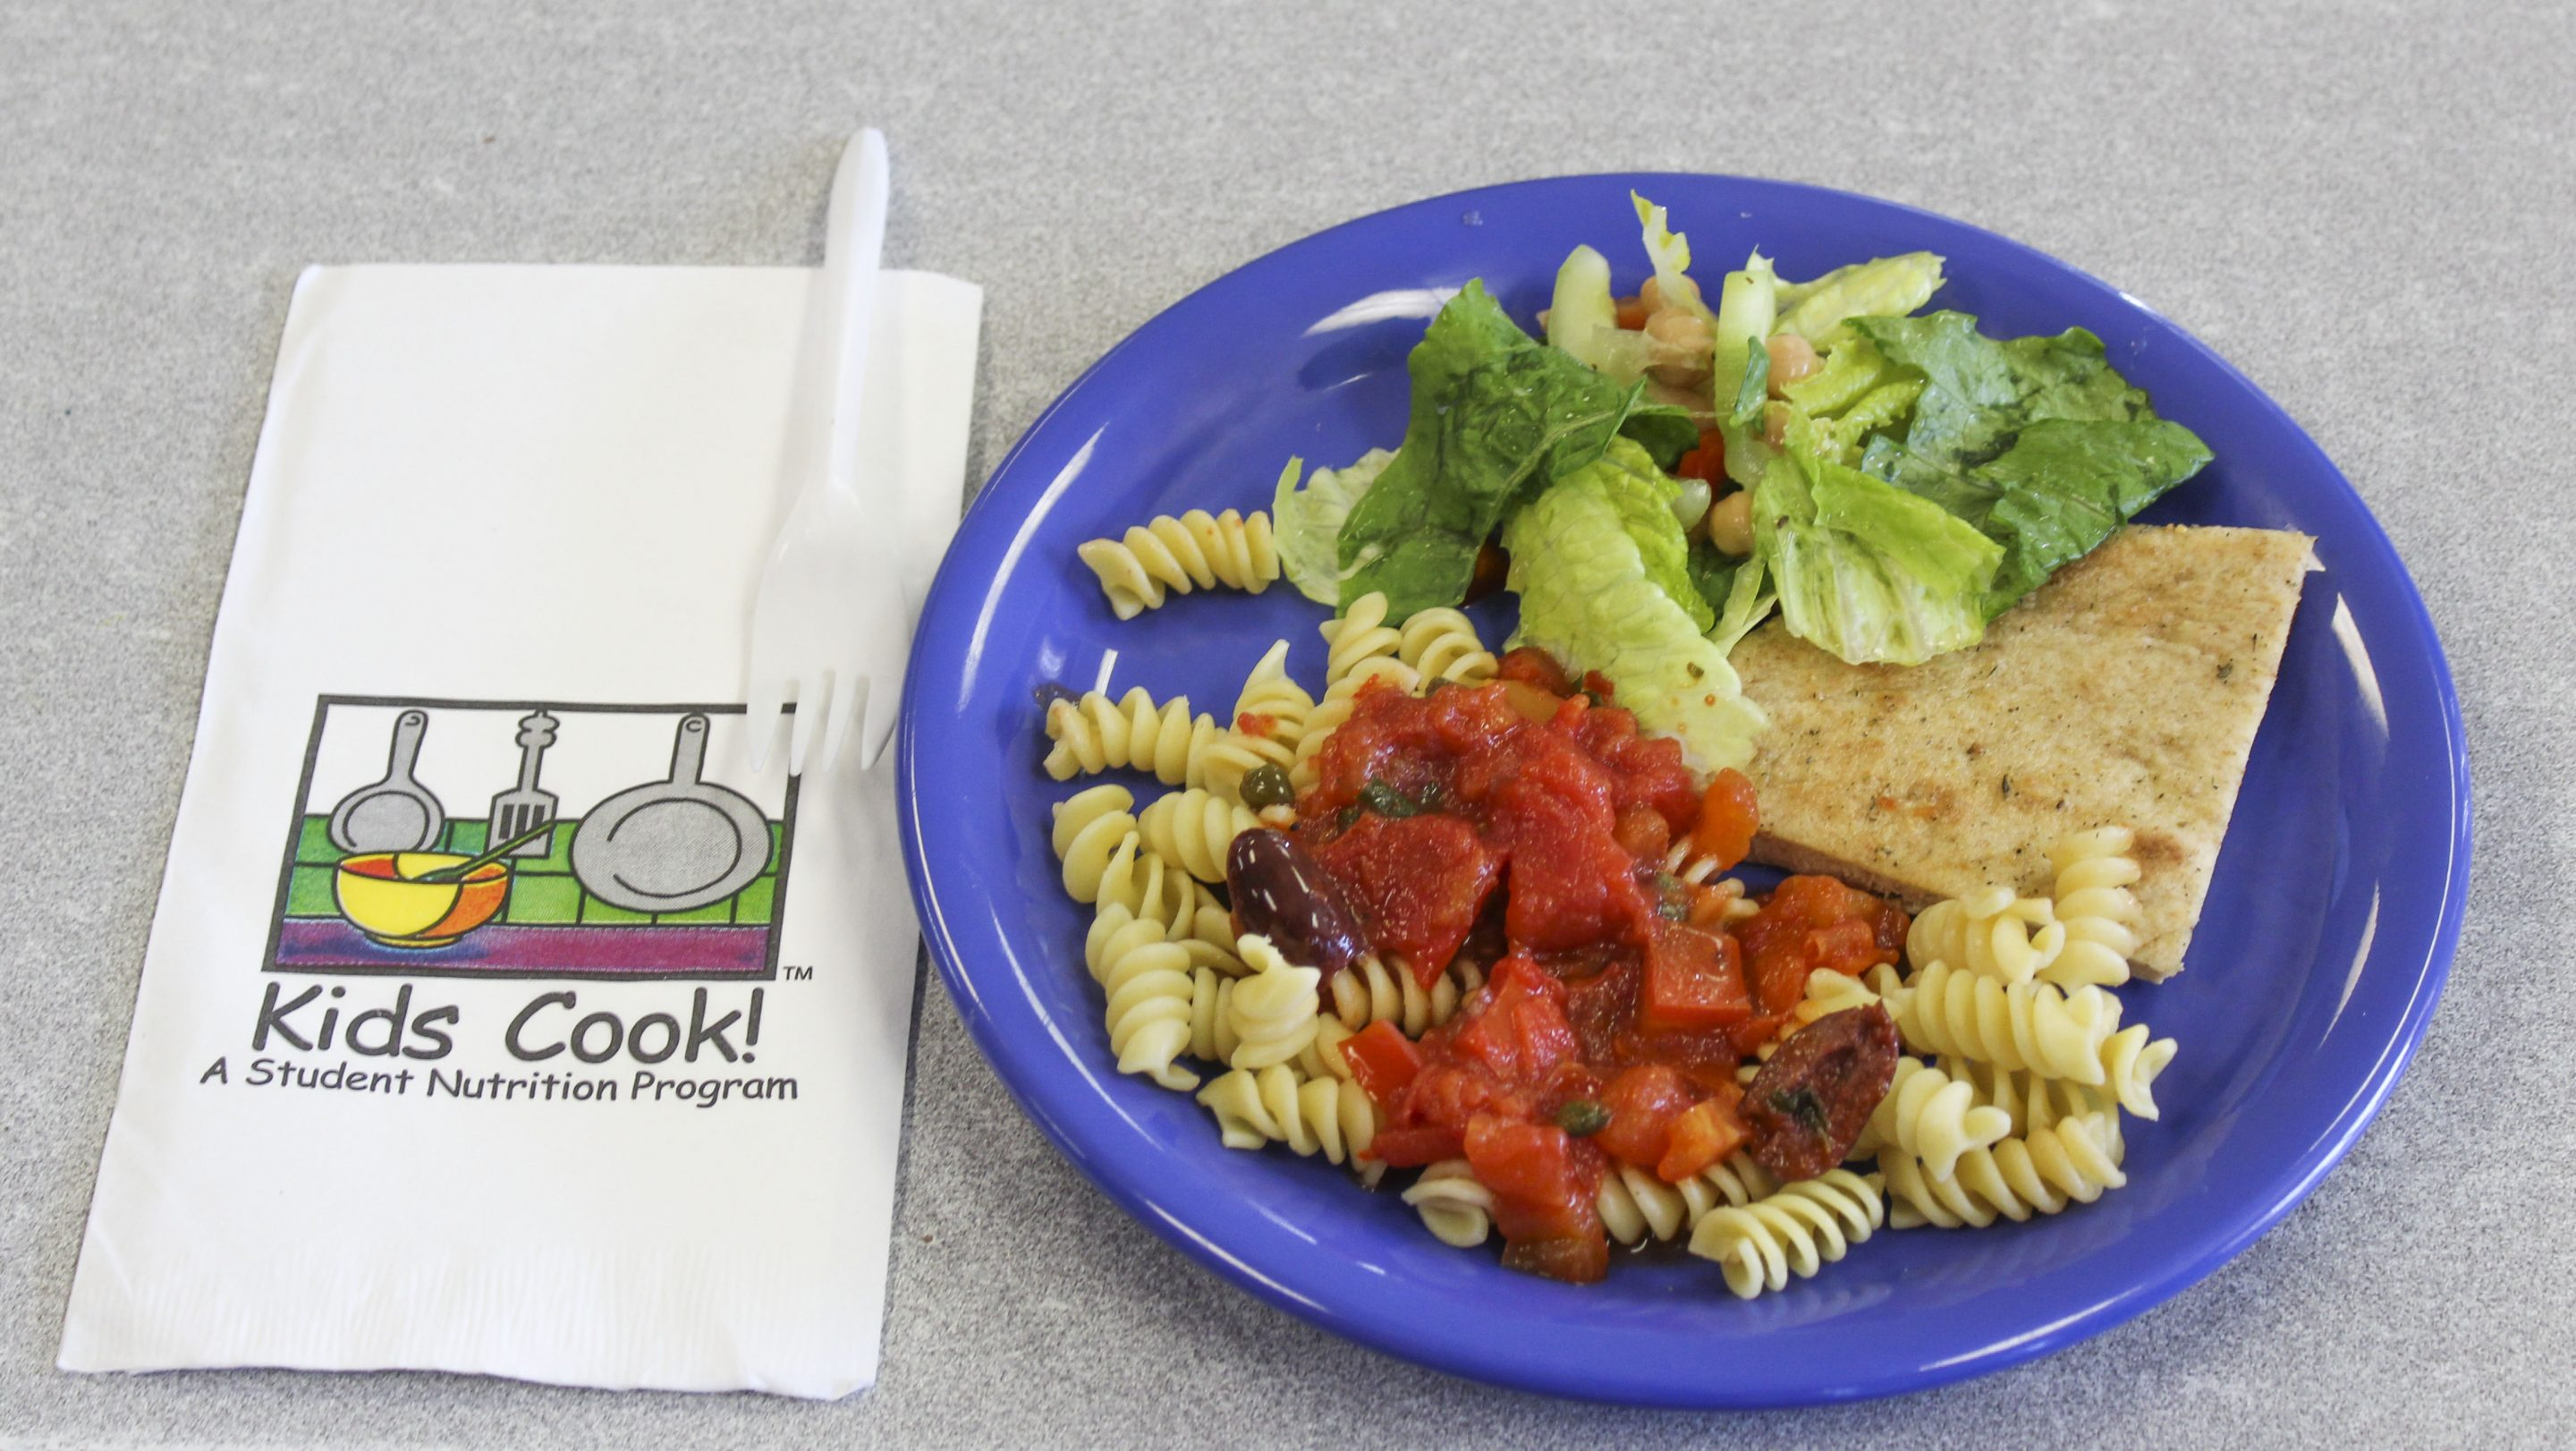 A blue plate with each of the dishes cooked. A napkin with the Kids Cook! logo and a fork is on the left.